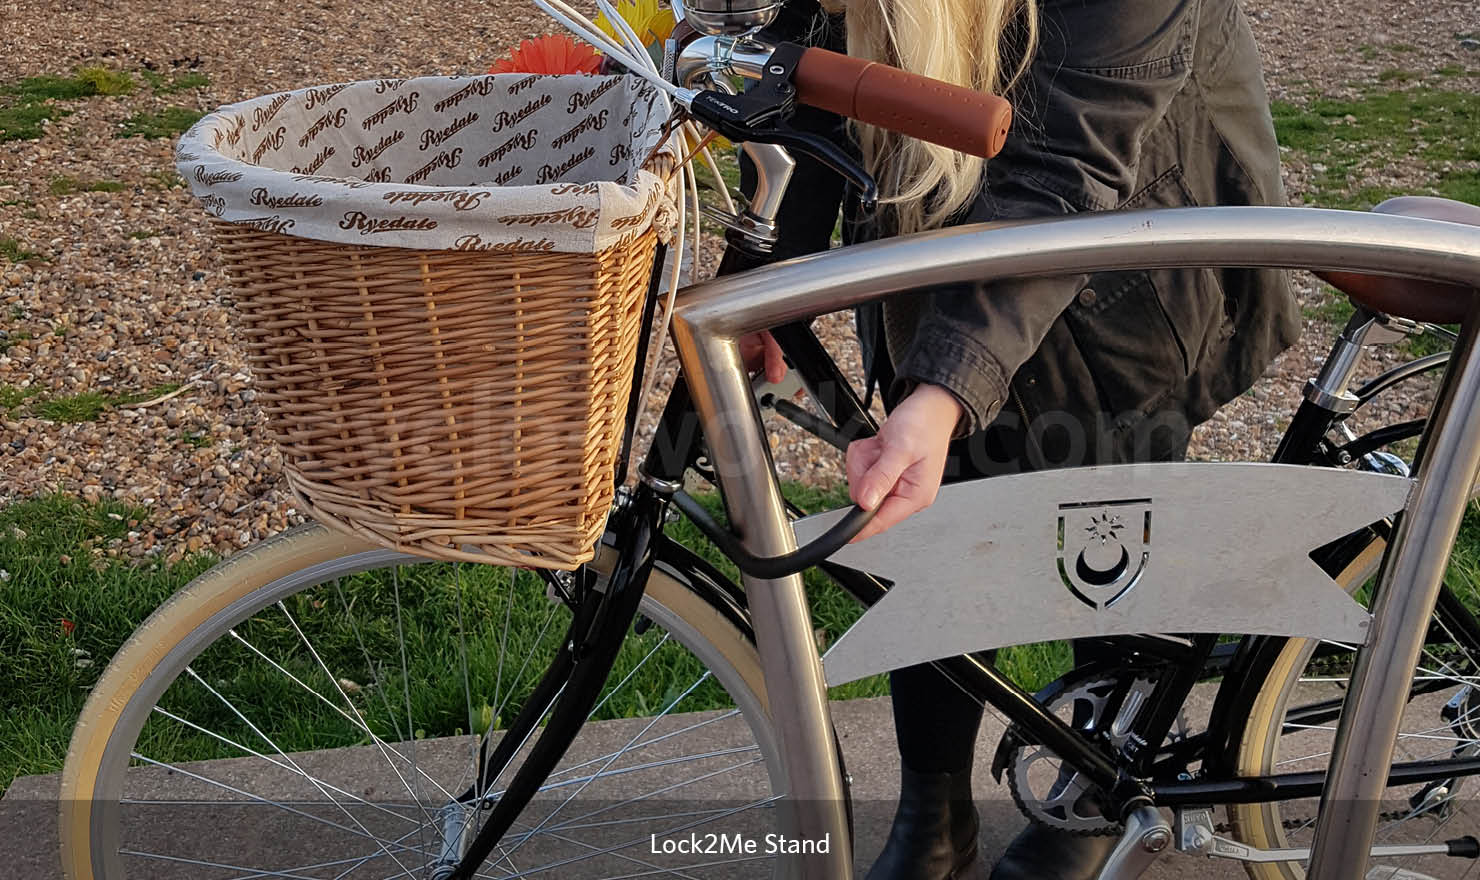 Lock to Me Bike Stand with horizontal security bar